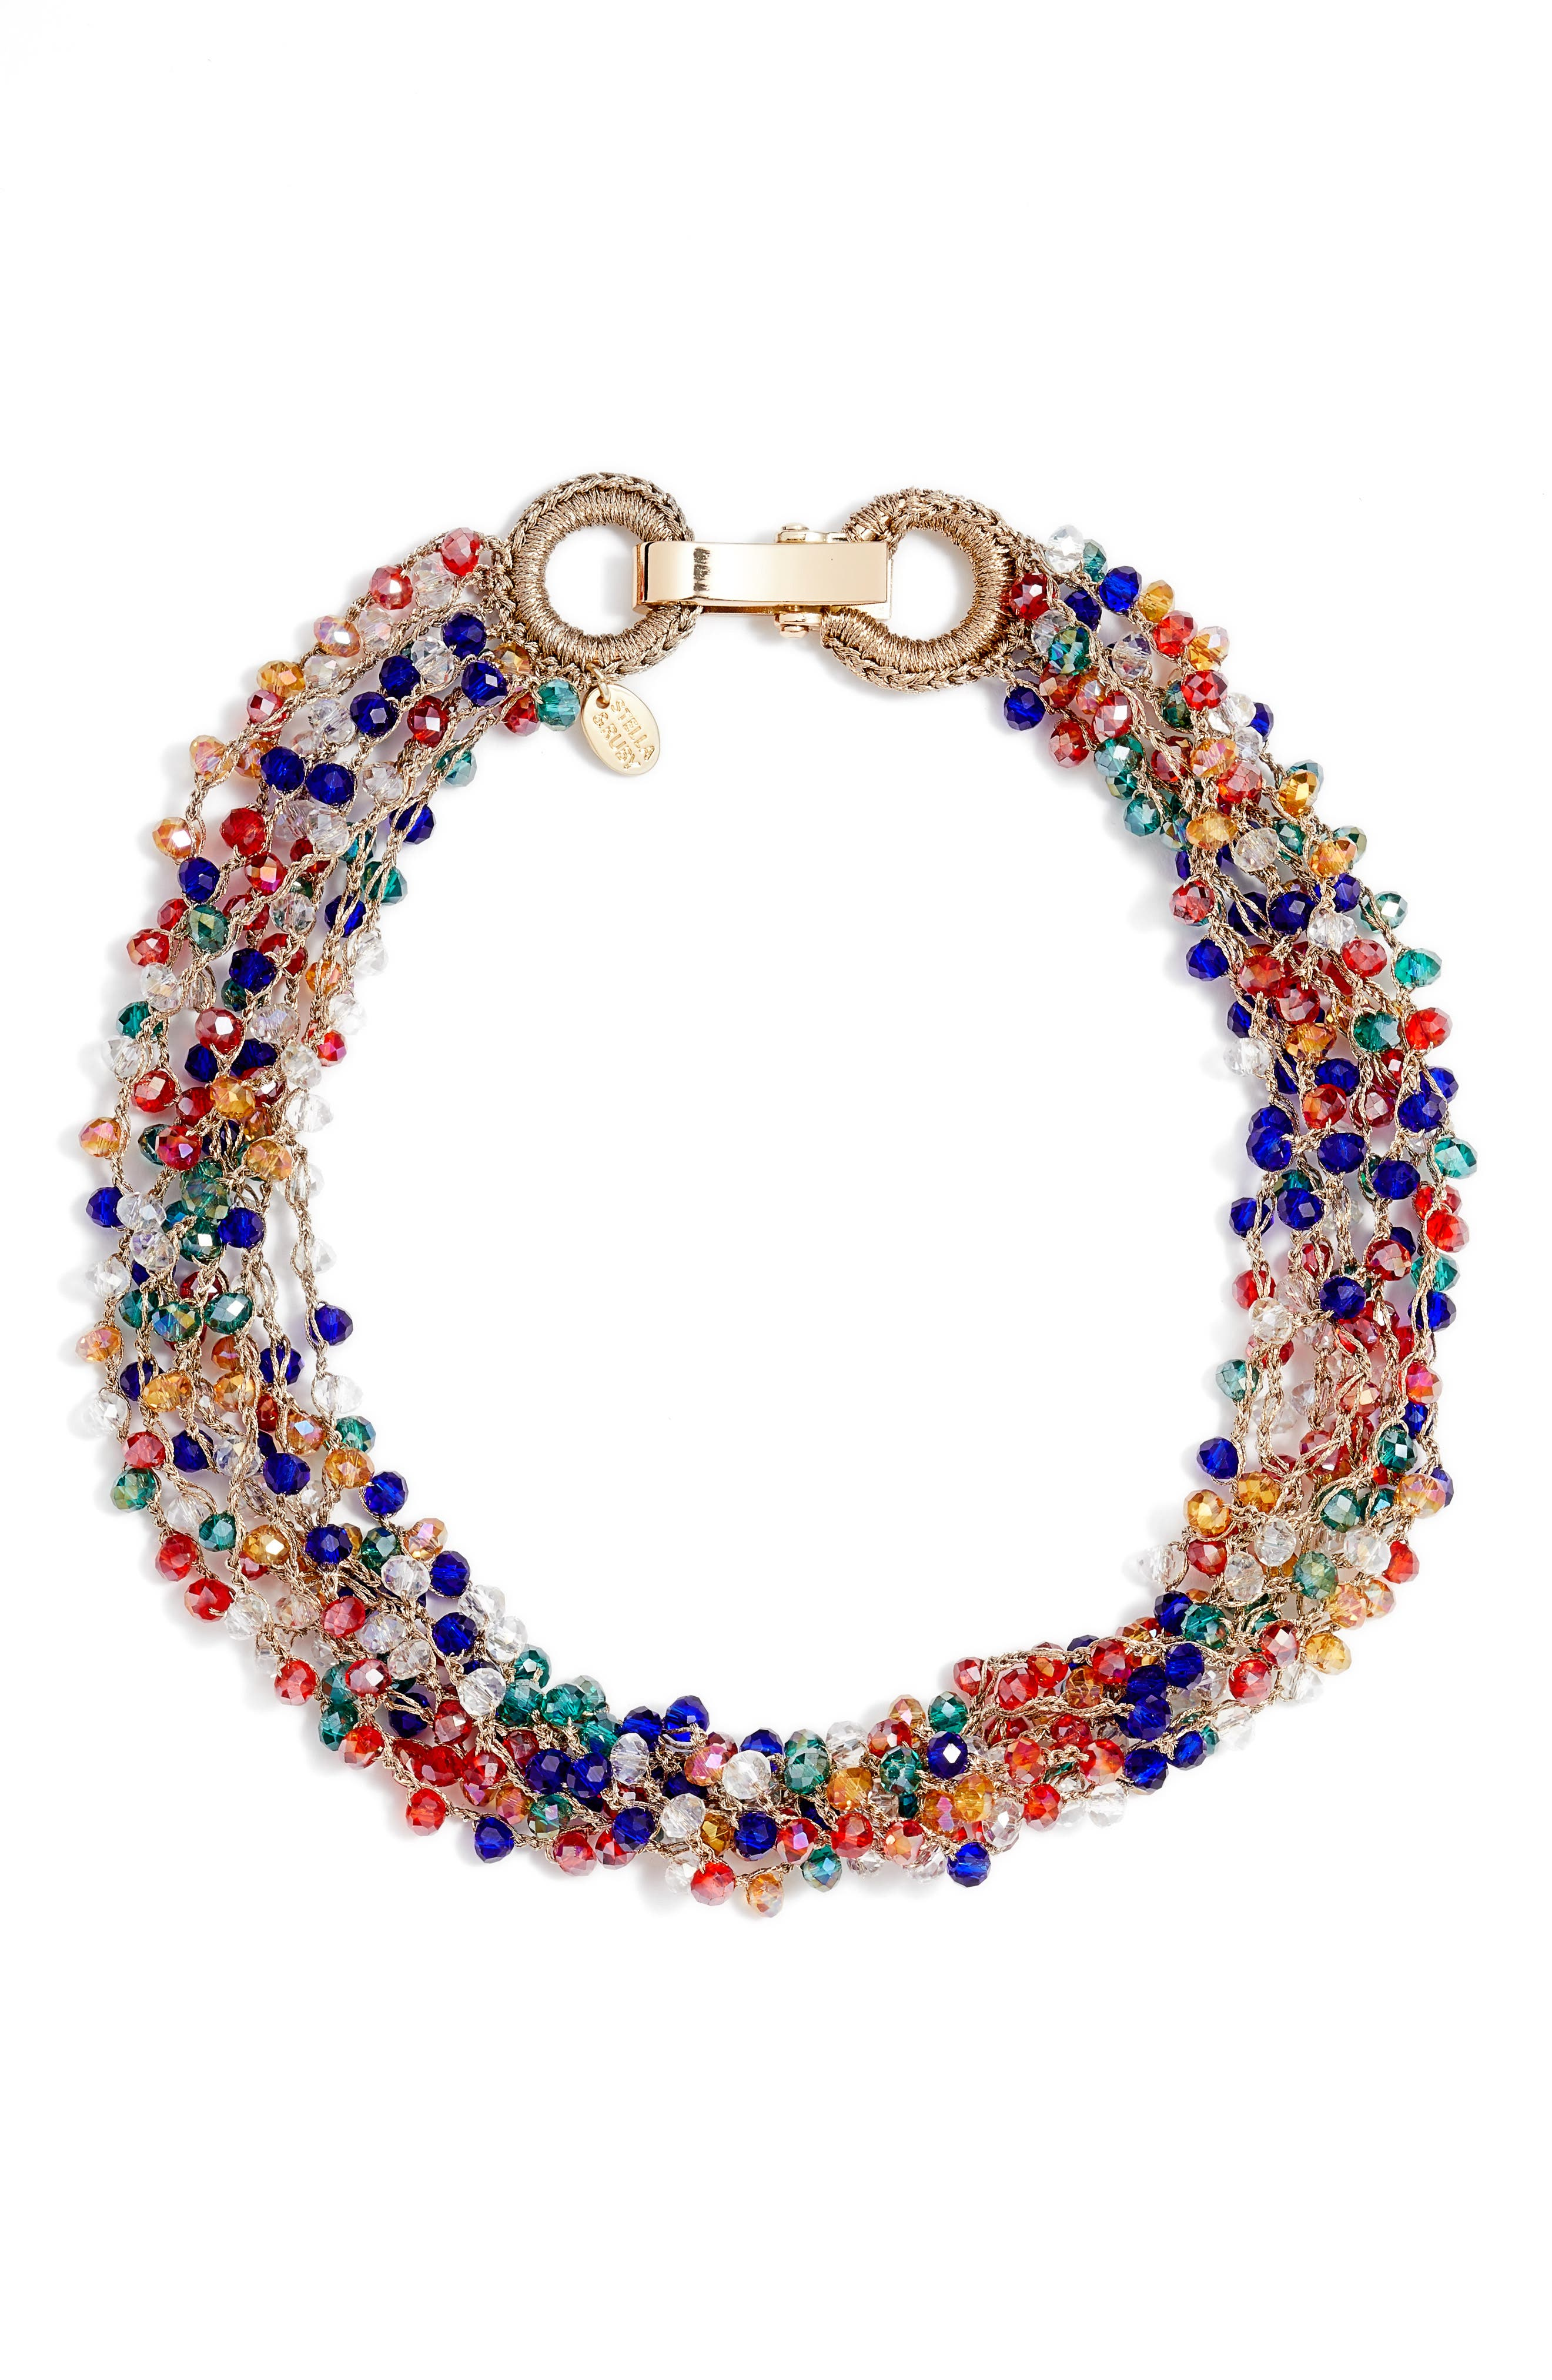 Crochet Beaded Collar Necklace,                             Main thumbnail 1, color,                             710